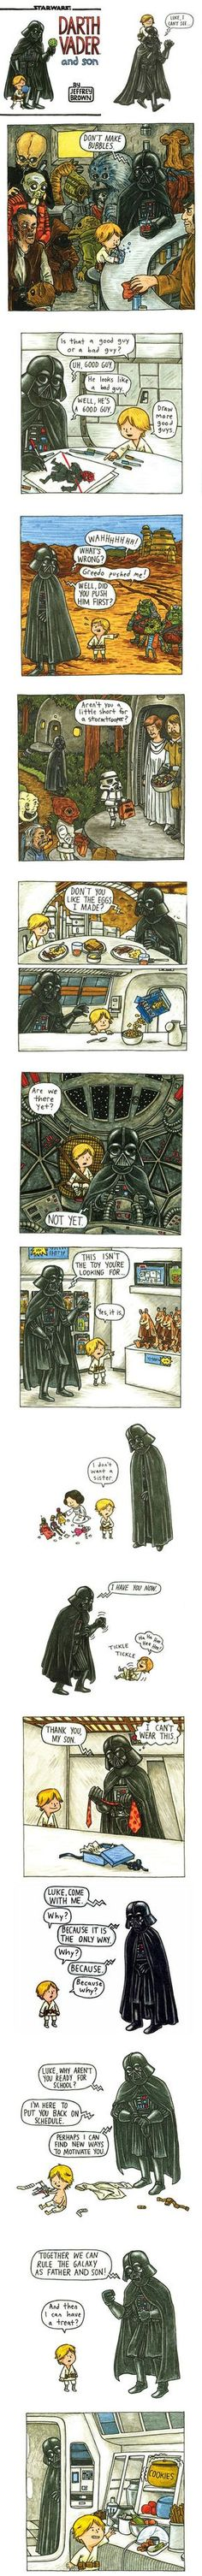 Darth Vader father & son.